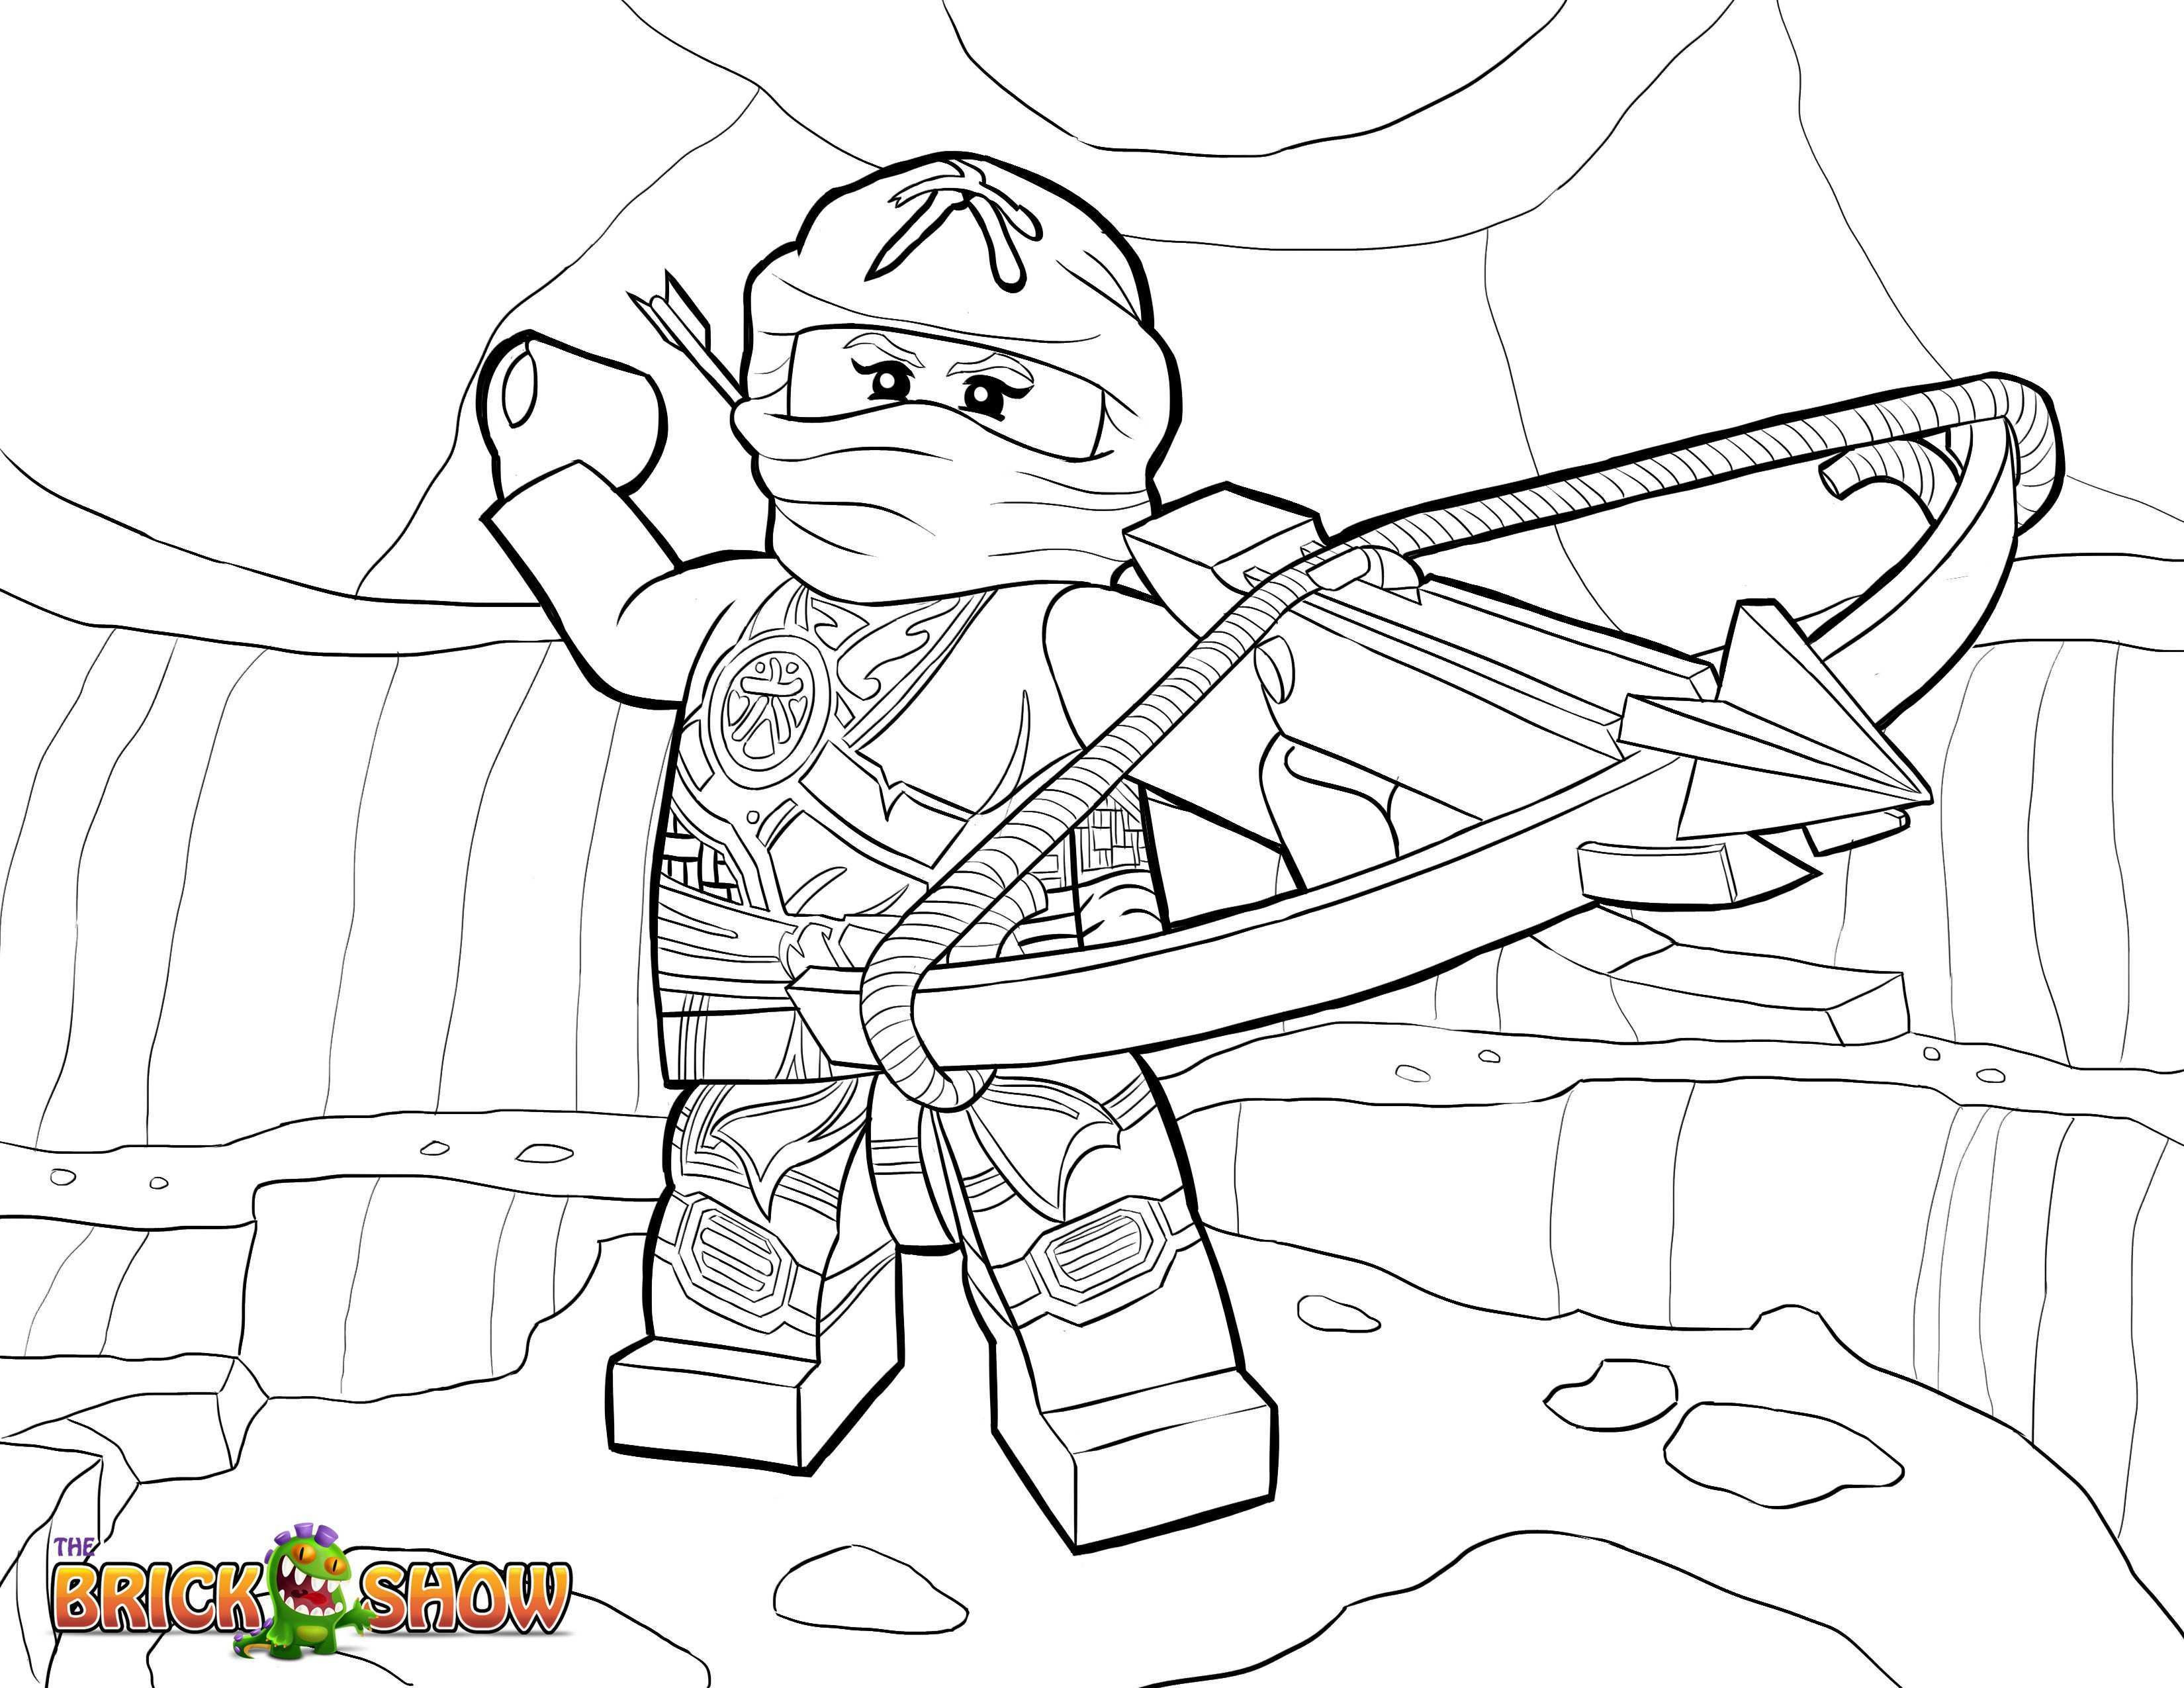 Ausmalbilder Lego City Einzigartig Free Printable Lego Chima Coloring Pages Beautiful Ausmalbilder Lego Bild